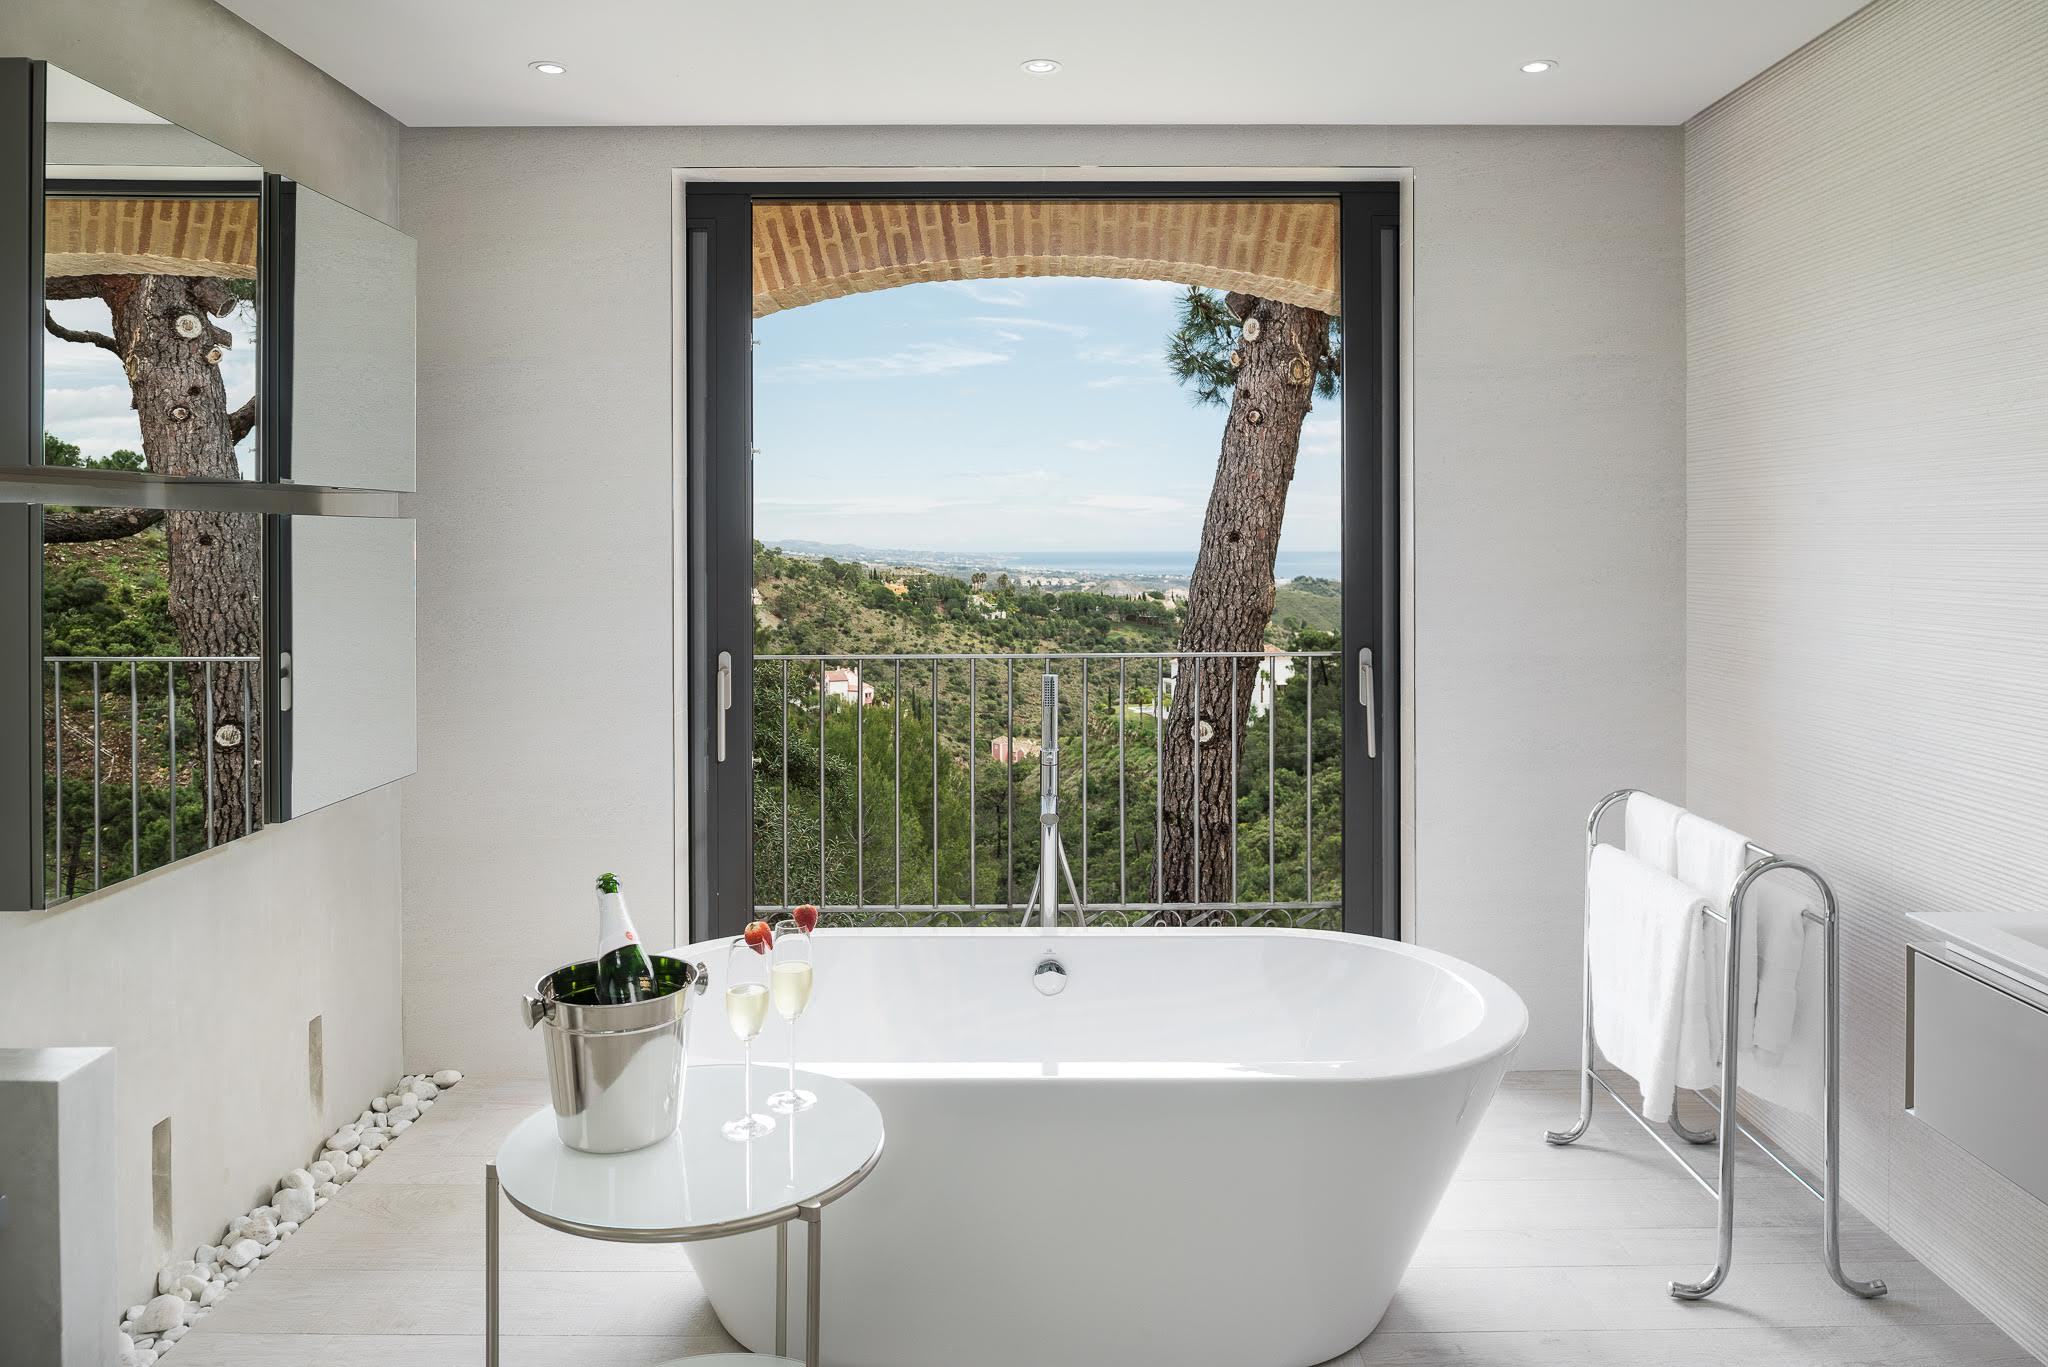 Master bathroom with a view, from a house renovated by clients of mine in El Madroñal, in the hills behind Marbella